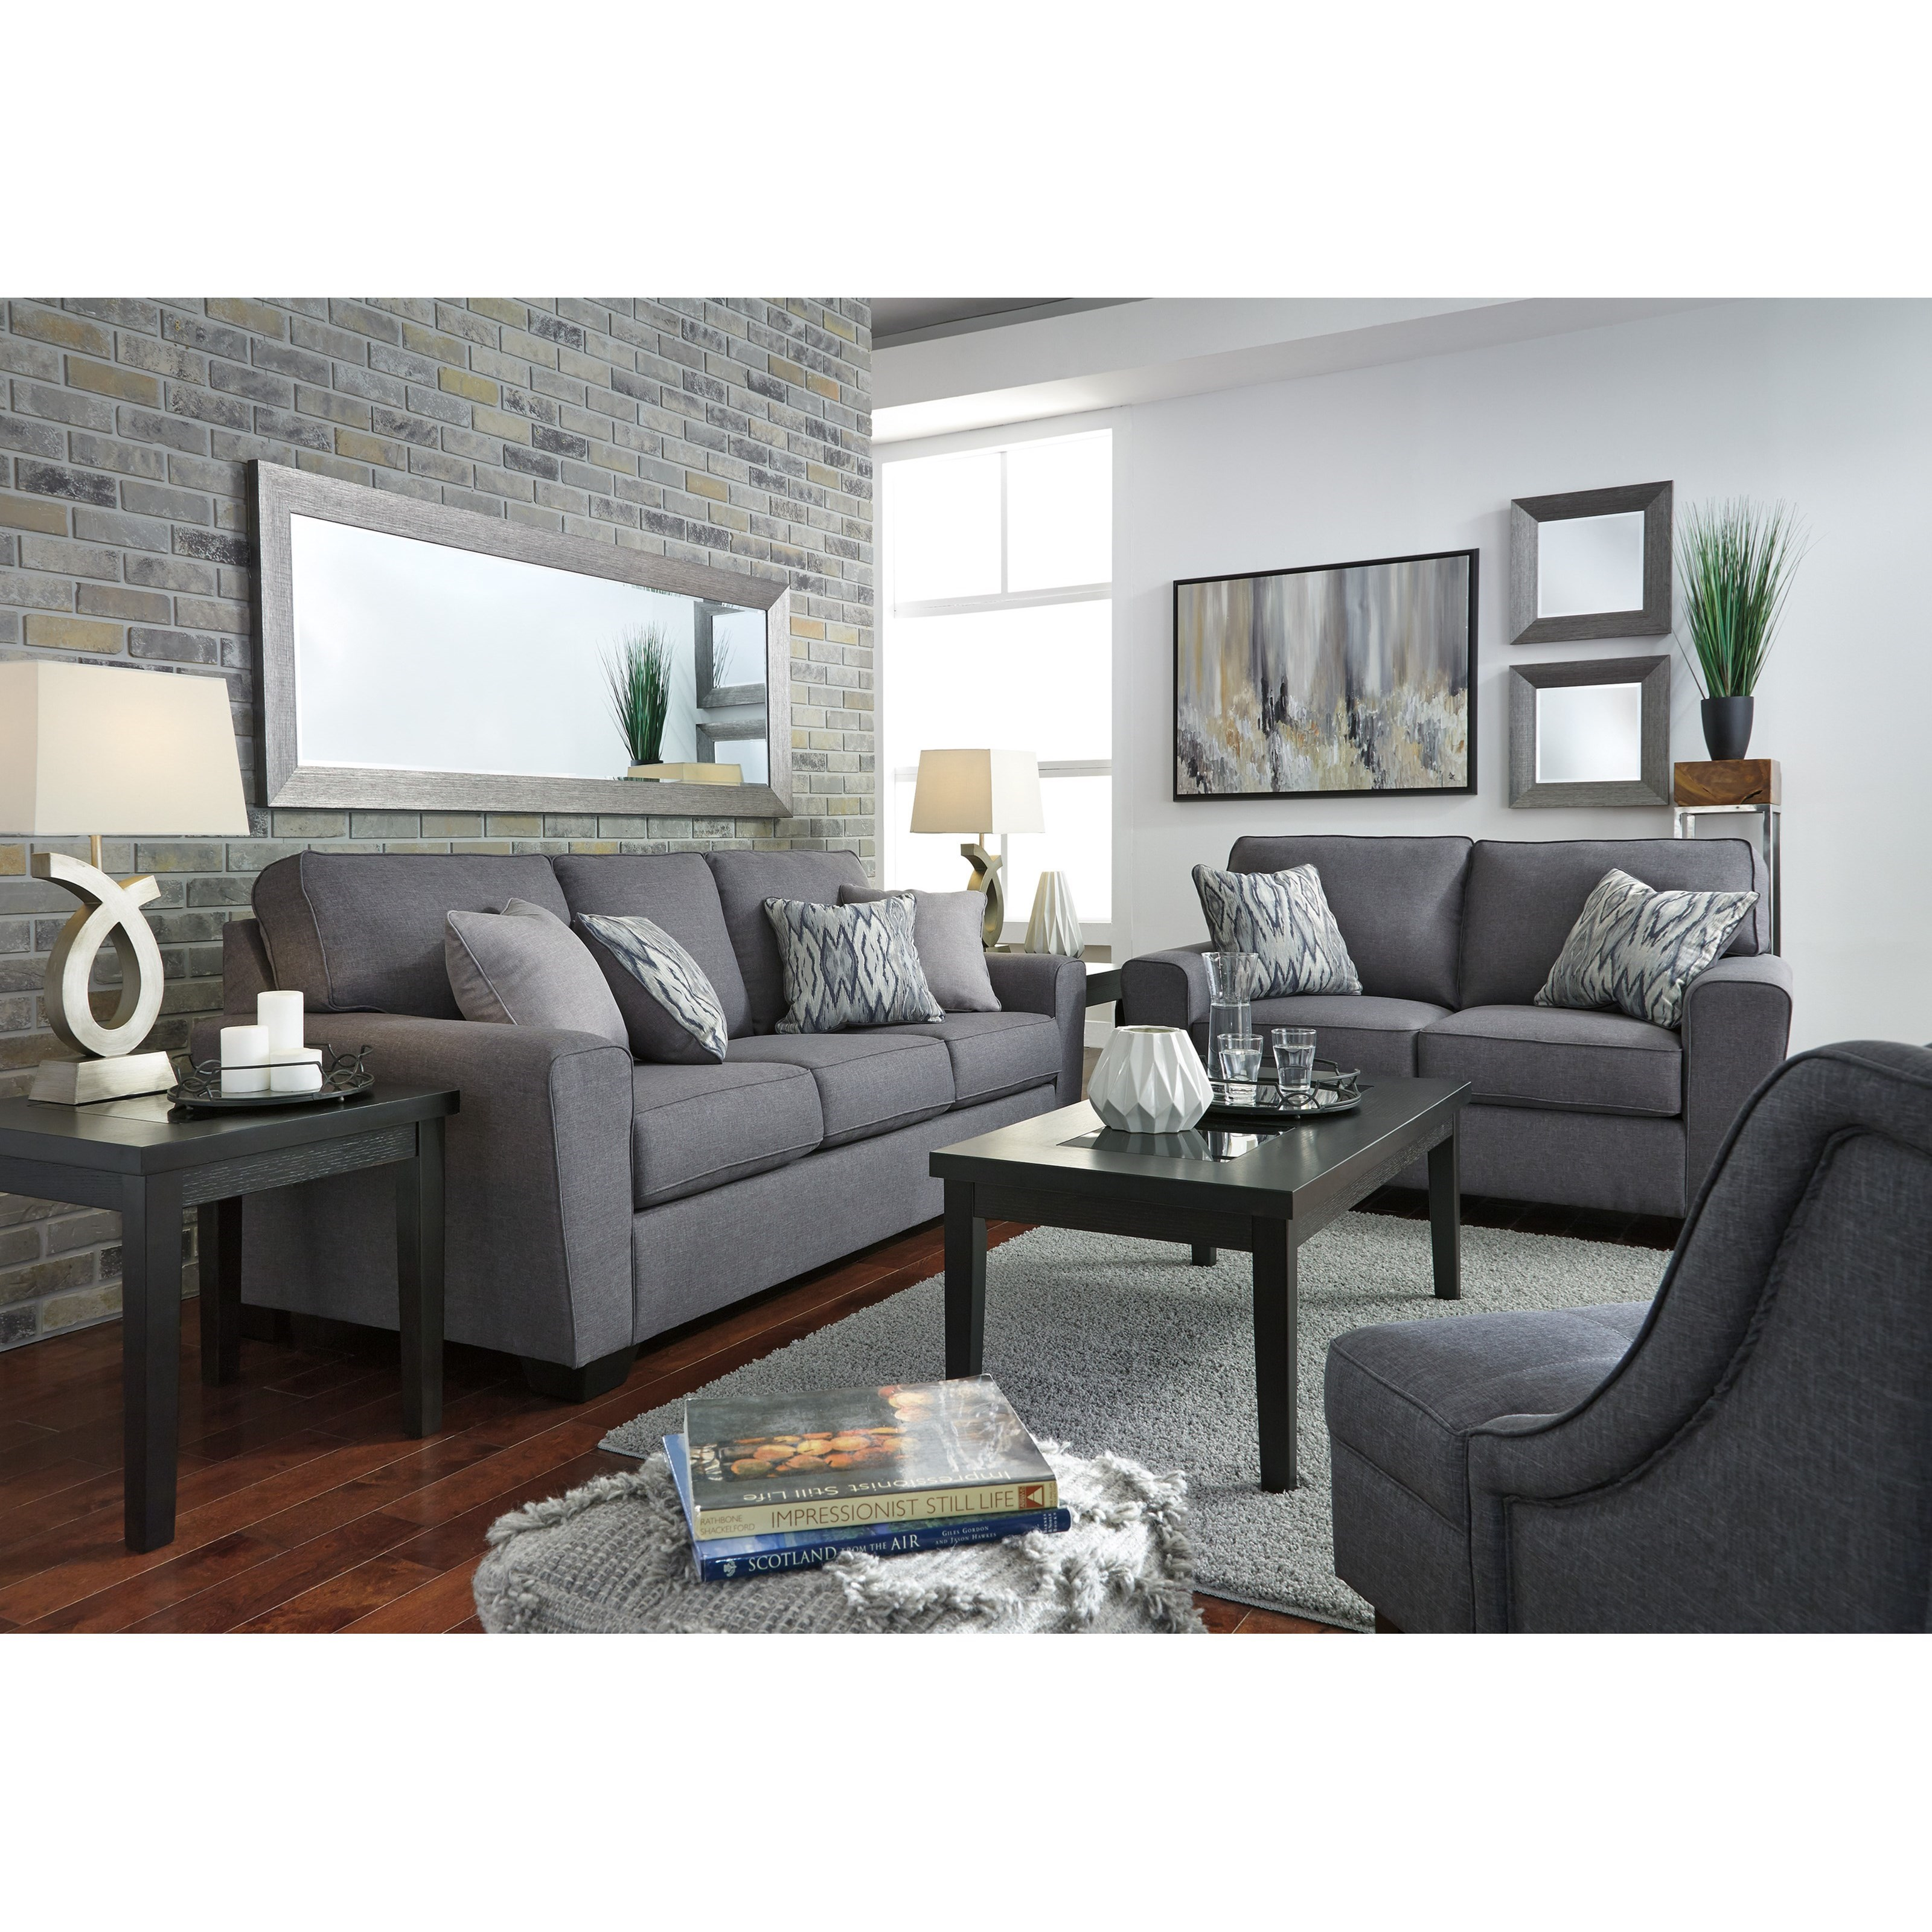 Furniture By Ashley: Ashley Furniture Calion Stationary Living Room Group